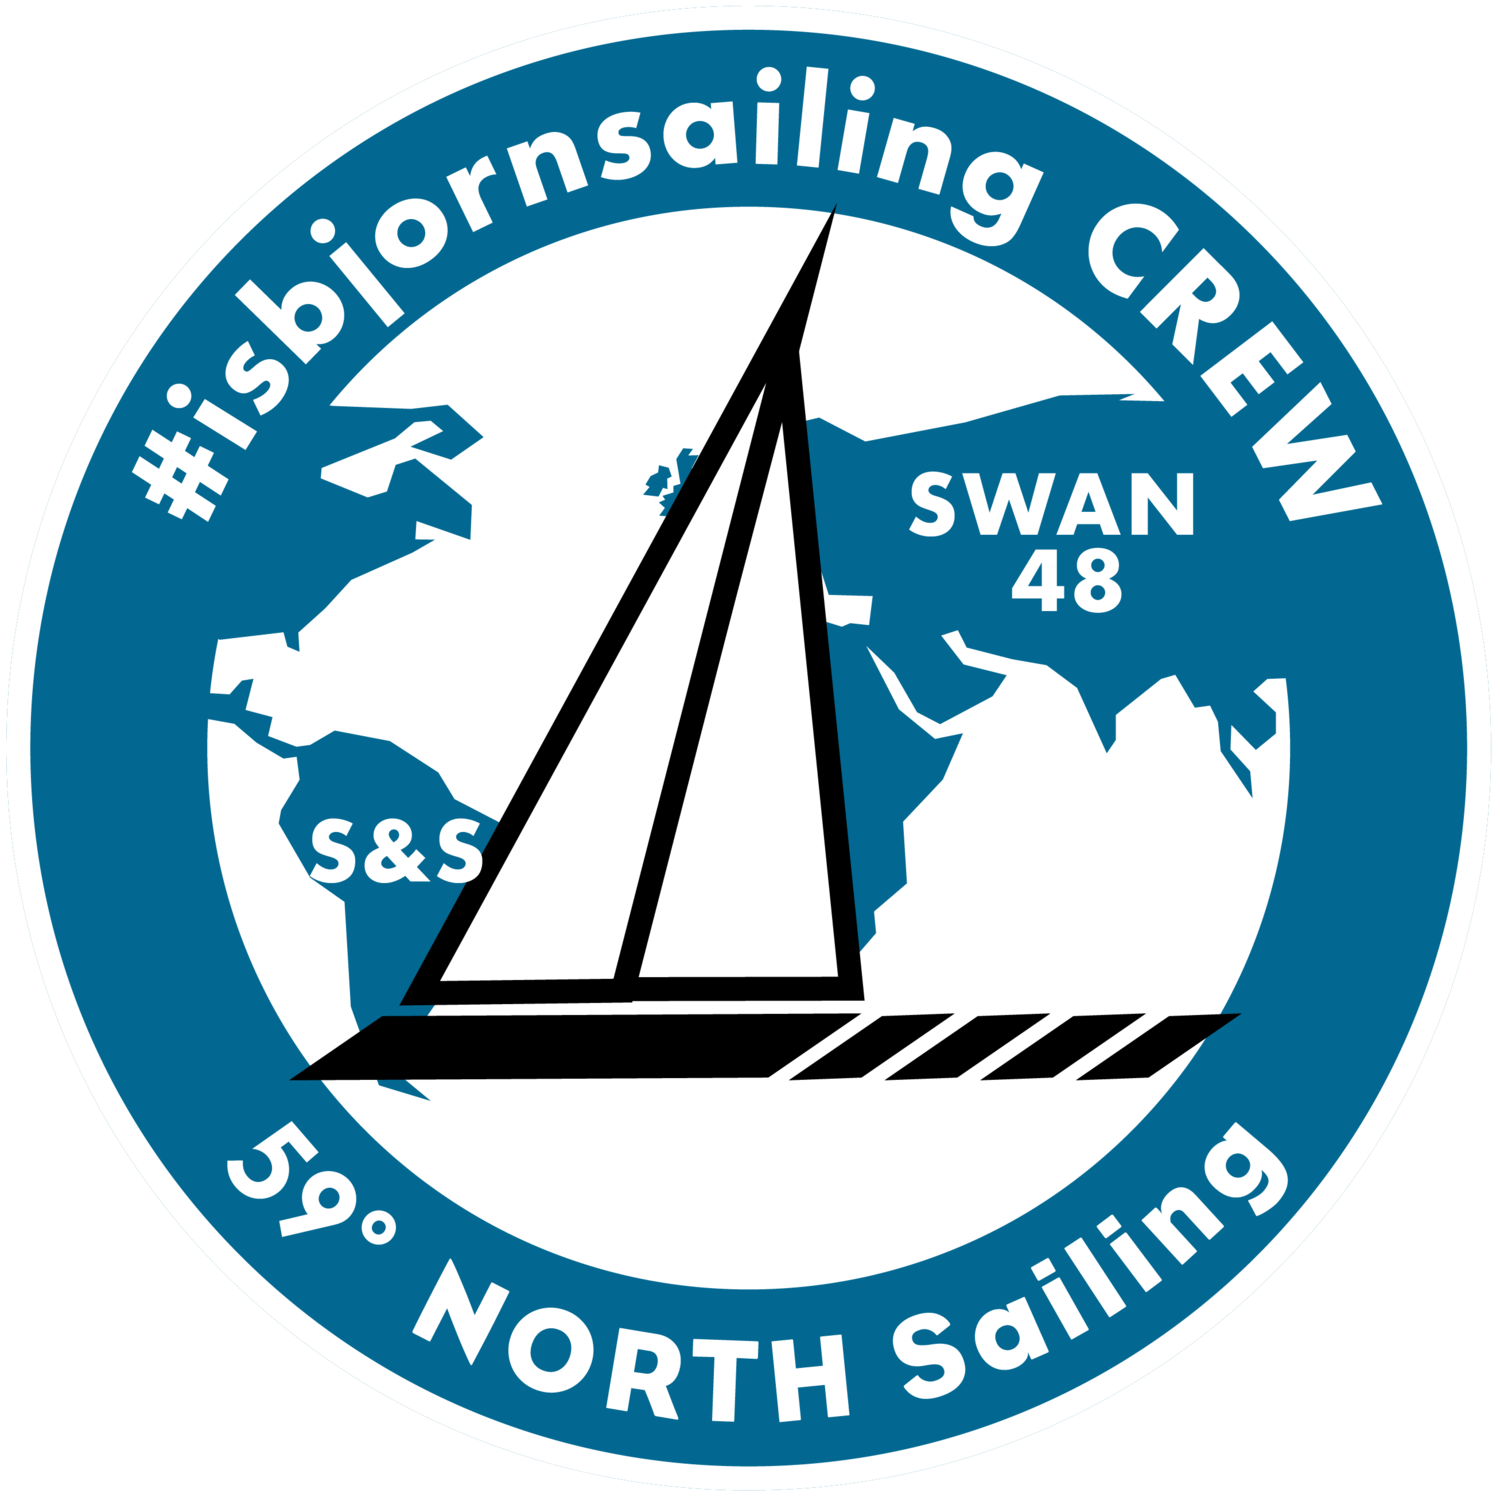 59º North Sailing